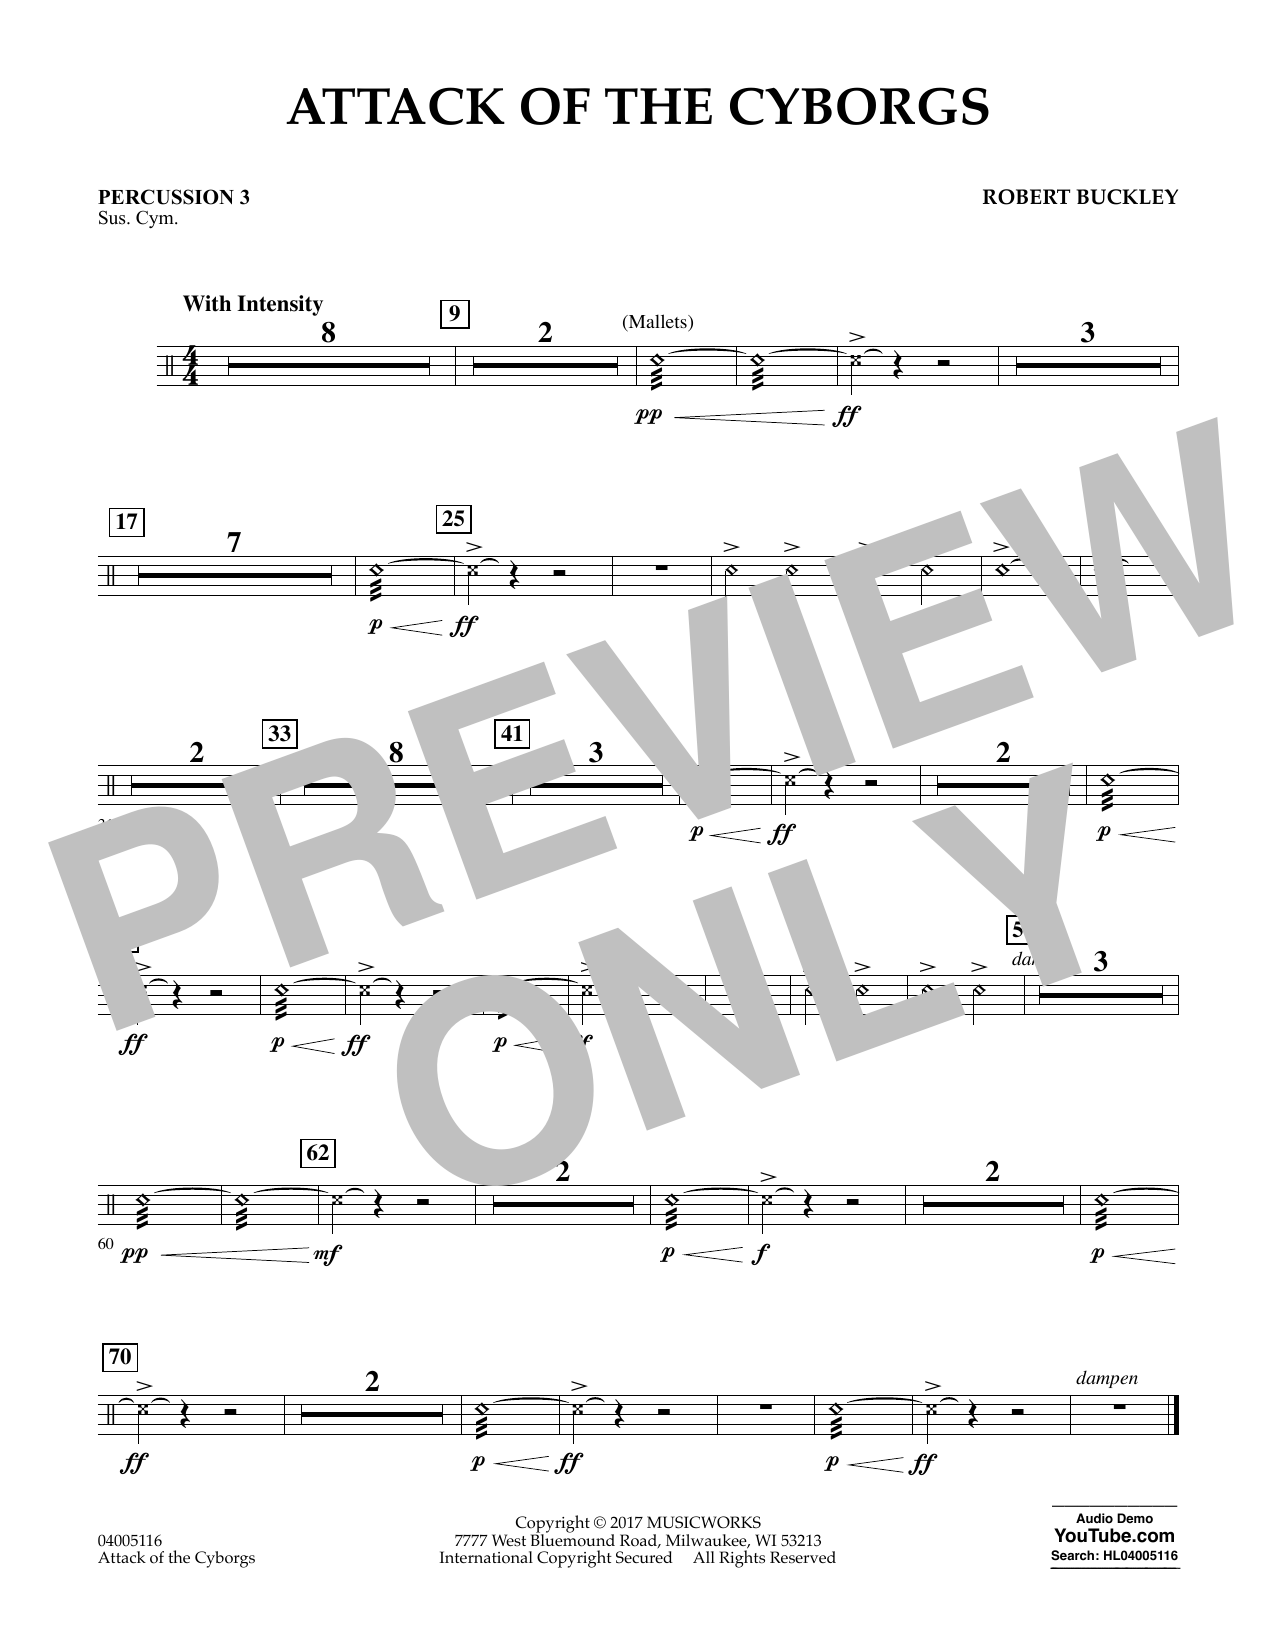 Robert Buckley Attack of the Cyborgs - Percussion 3 sheet music notes and chords. Download Printable PDF.